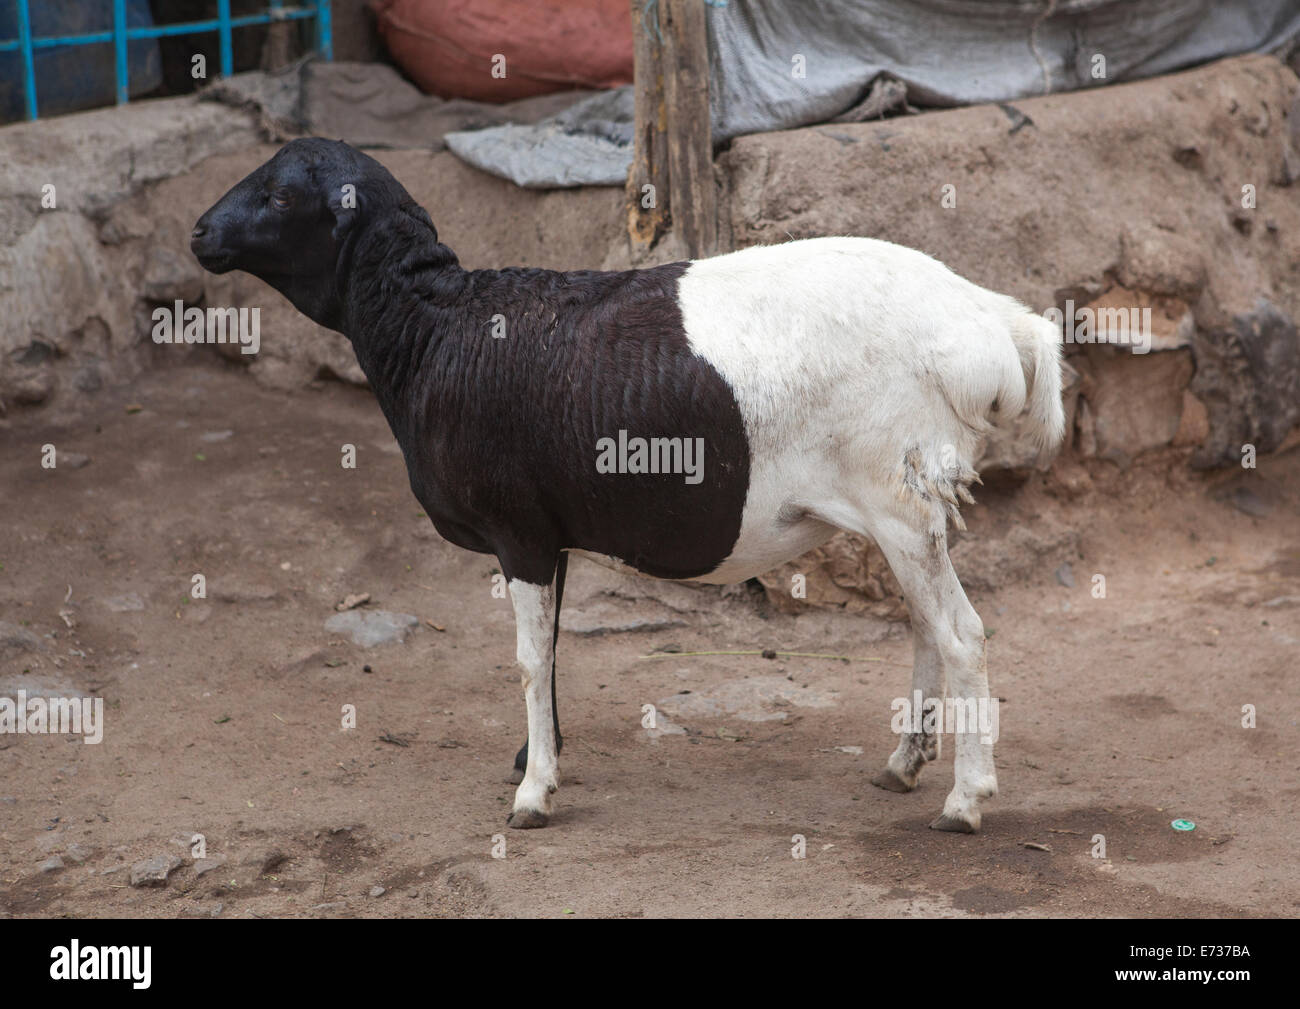 Sheep With Long Tail In Market, Assyata, Ethiopia - Stock Image